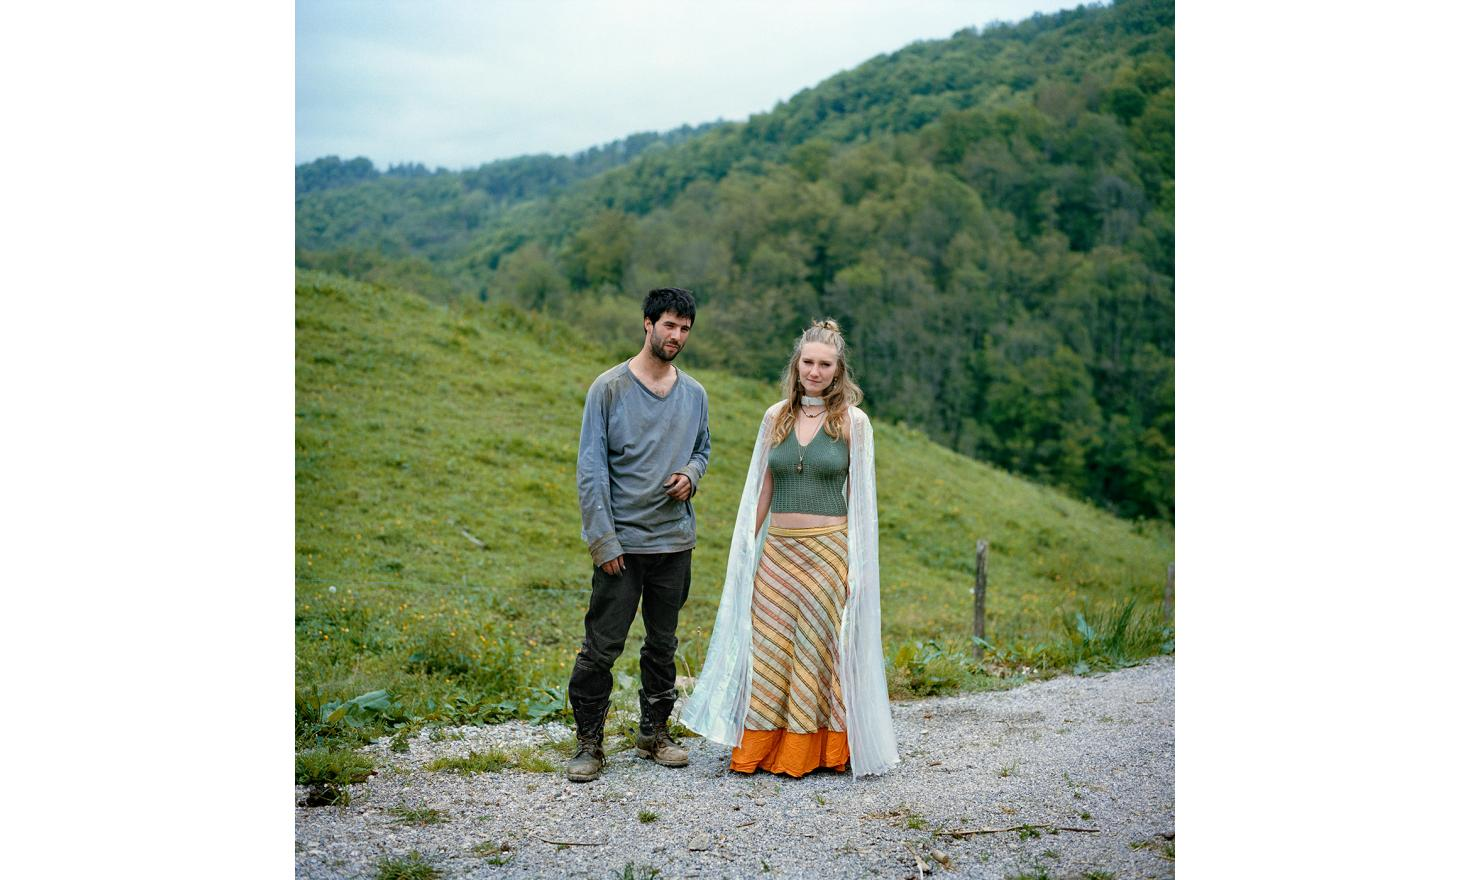 Inti with his girl friend  Maéva. It was the 70s and the communities flourished in Ariege. Inti is a child of hippies, neo-rurals who settled in these mountains of Couserans. Until the age of 8 years he lived in the middle of the forest and the animals.